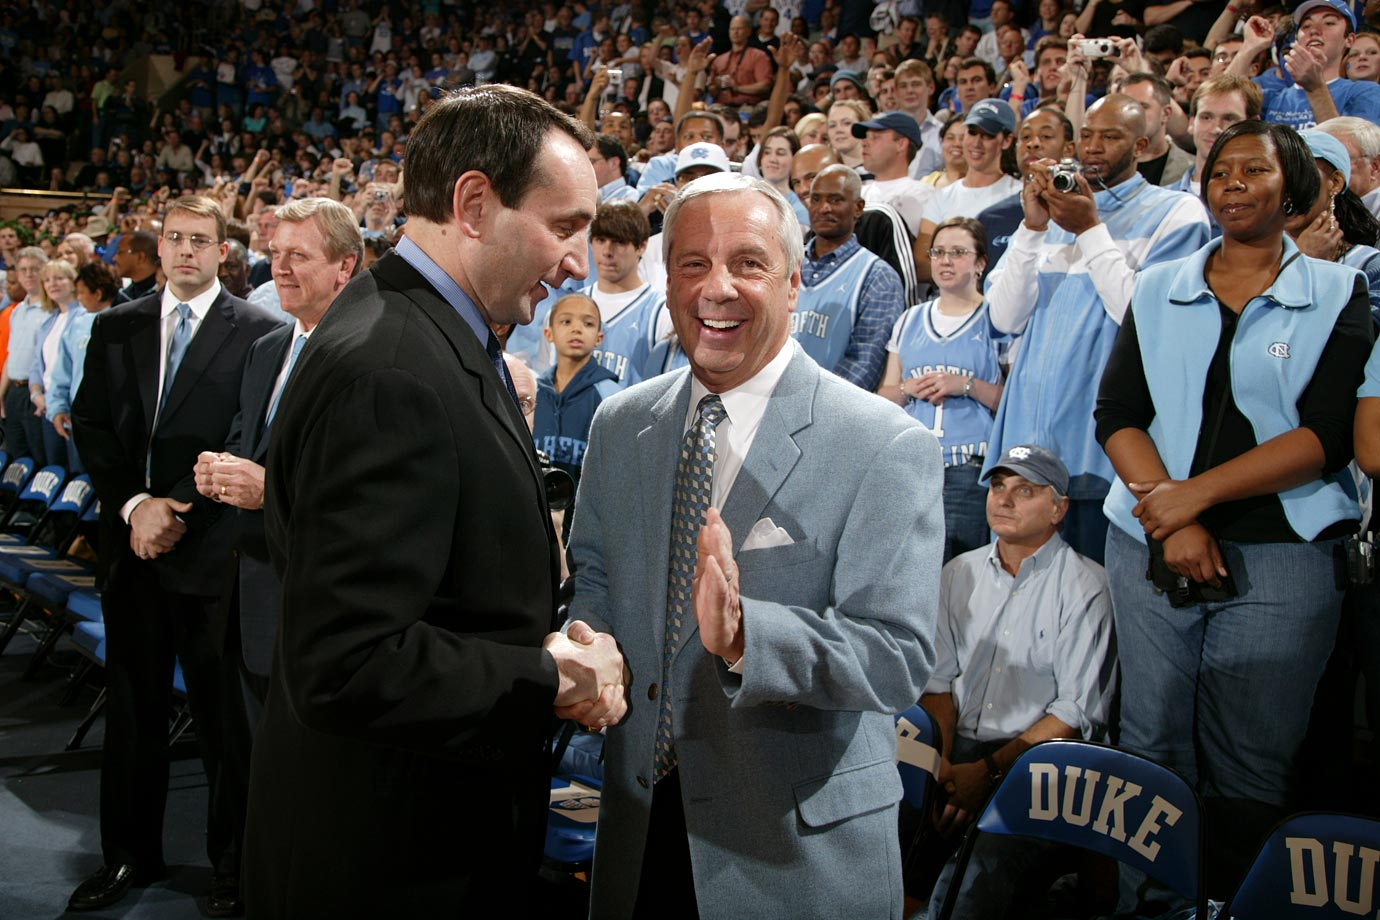 Mike Krzyzewski shakes hands with Roy Williams before a game in March 2006. Duke lost to North Carolina, 83-76.